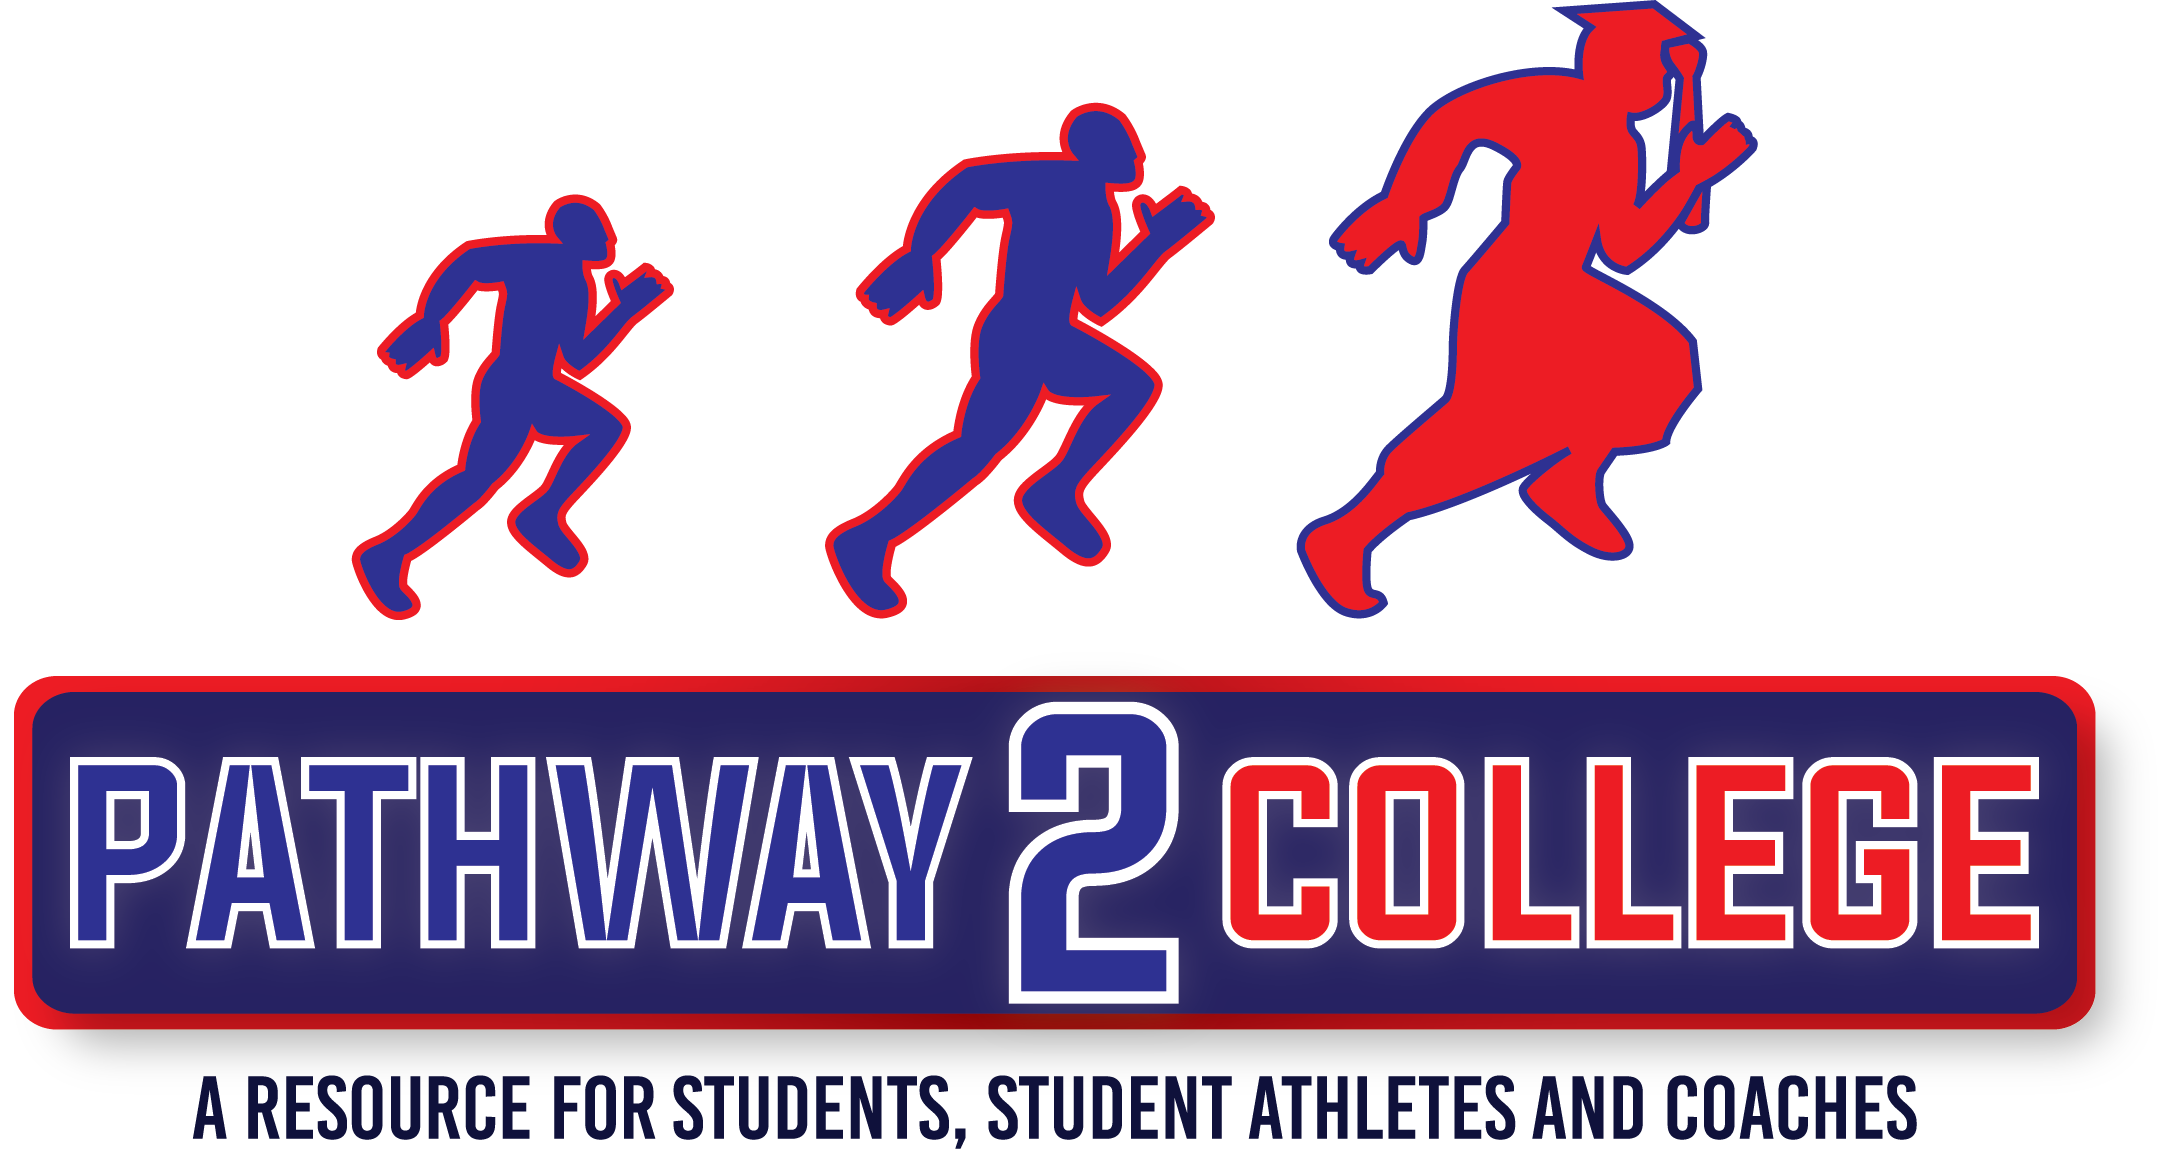 Pathway2College